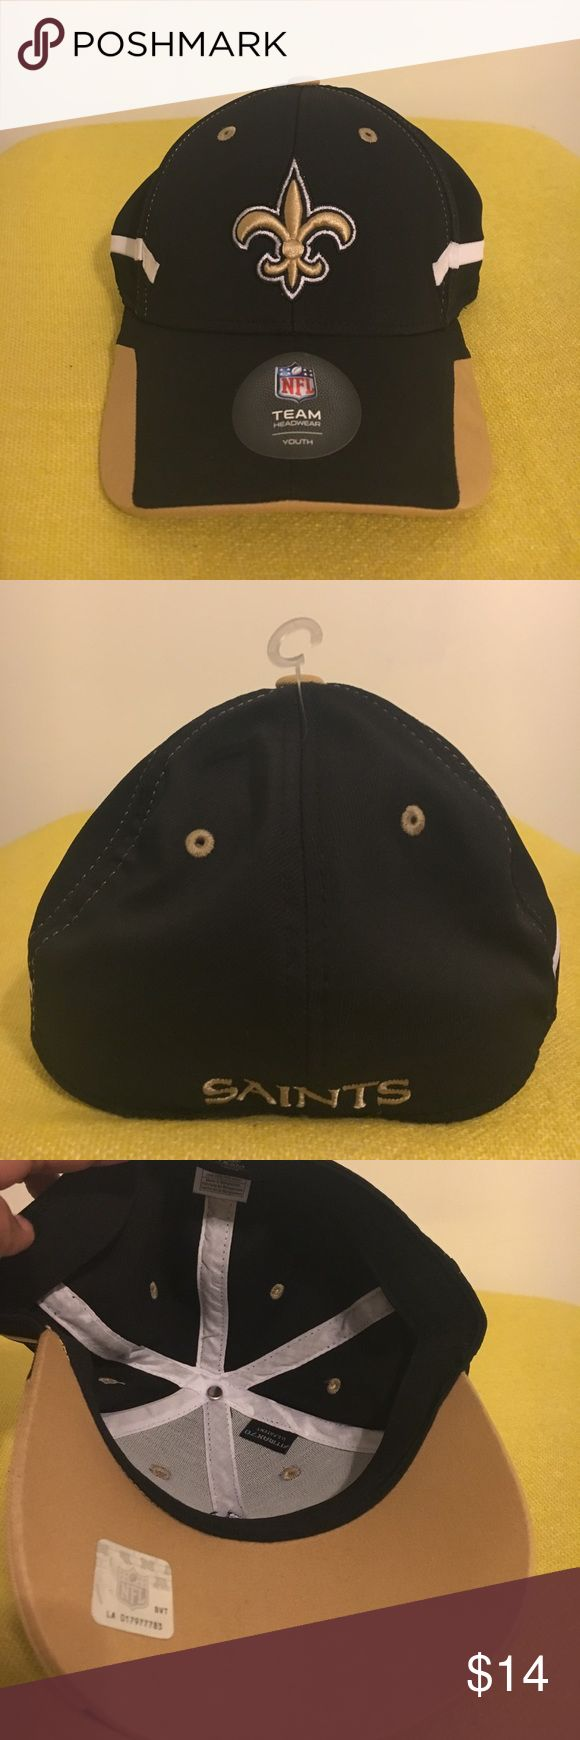 "New Orleans Saint youth ball cap New.Who Dat ""Who Dat"" NFL new youth cap NFL Accessories Hats"